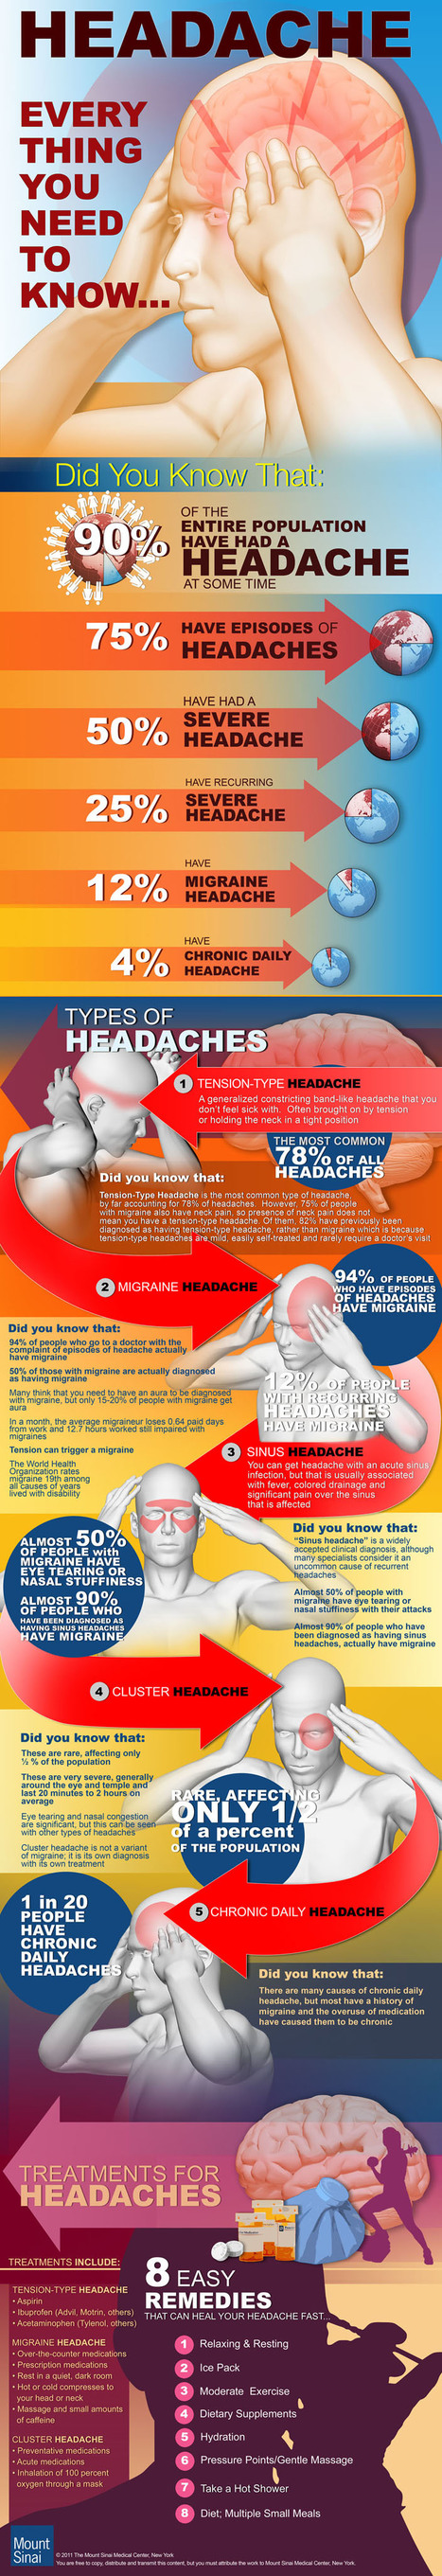 Health Tips: 90% of World Population Suffering from Headache [How to Prevent] | All Infographics | Health and Nutrition | Scoop.it